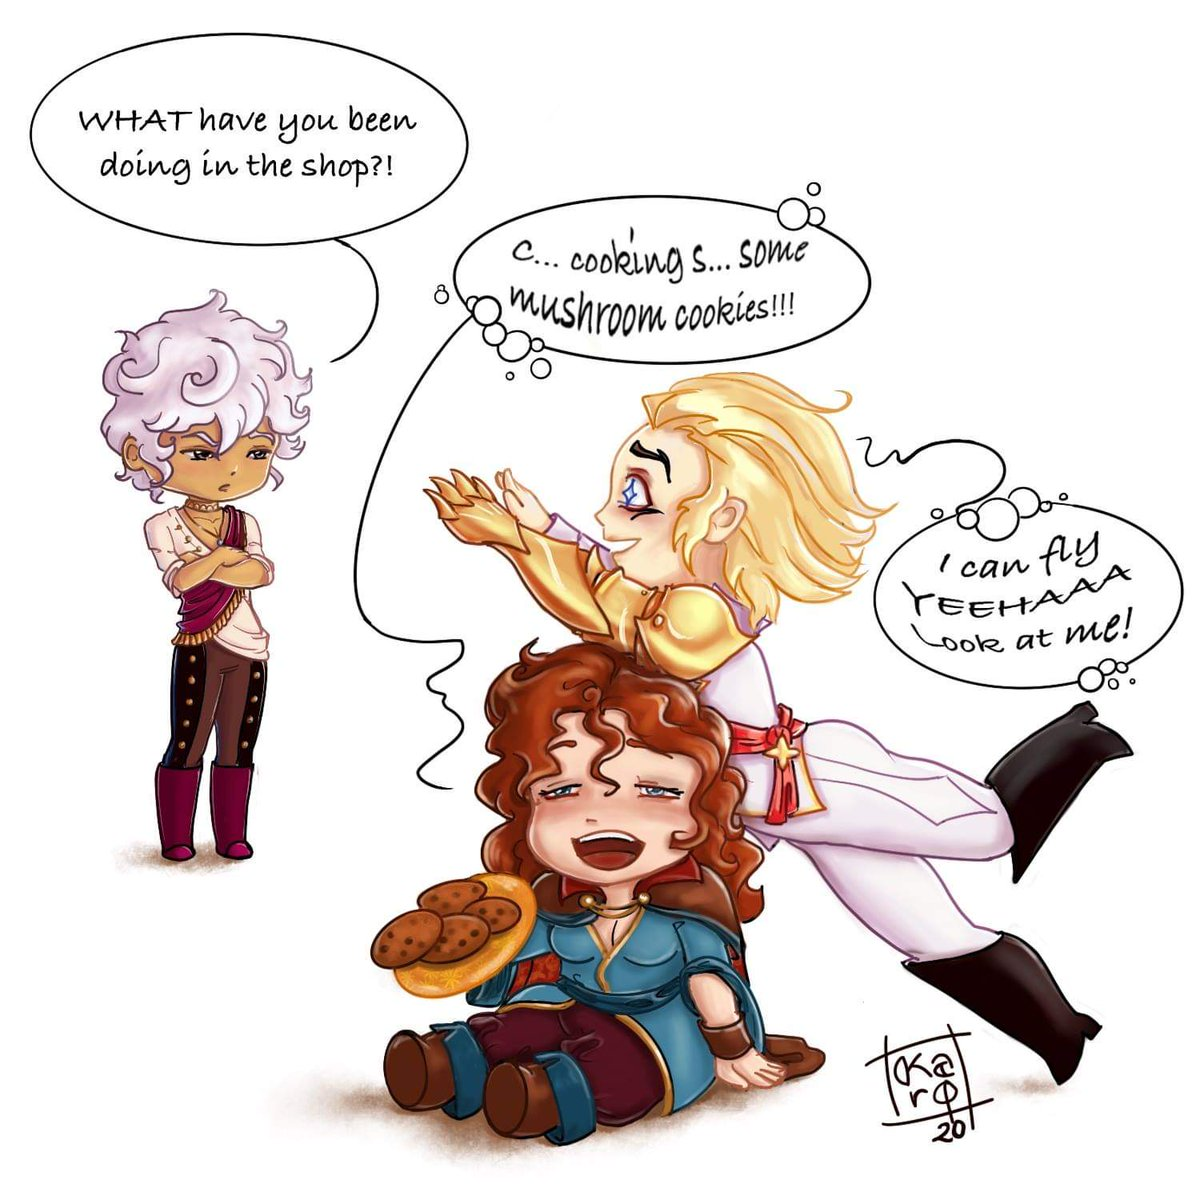 """In Lucio's last update (book XIII), what if MC decided to keep the *cough* """"weird mushrooms"""" into the cookies they bake with Lucio?... I couldn't resist drawing the result  Staring Asra, Lucio and my MC Aisling.  #thearcana #thearcanagame #thearcanamc #asrathearcana #countluciopic.twitter.com/3y5kWlaxu5"""